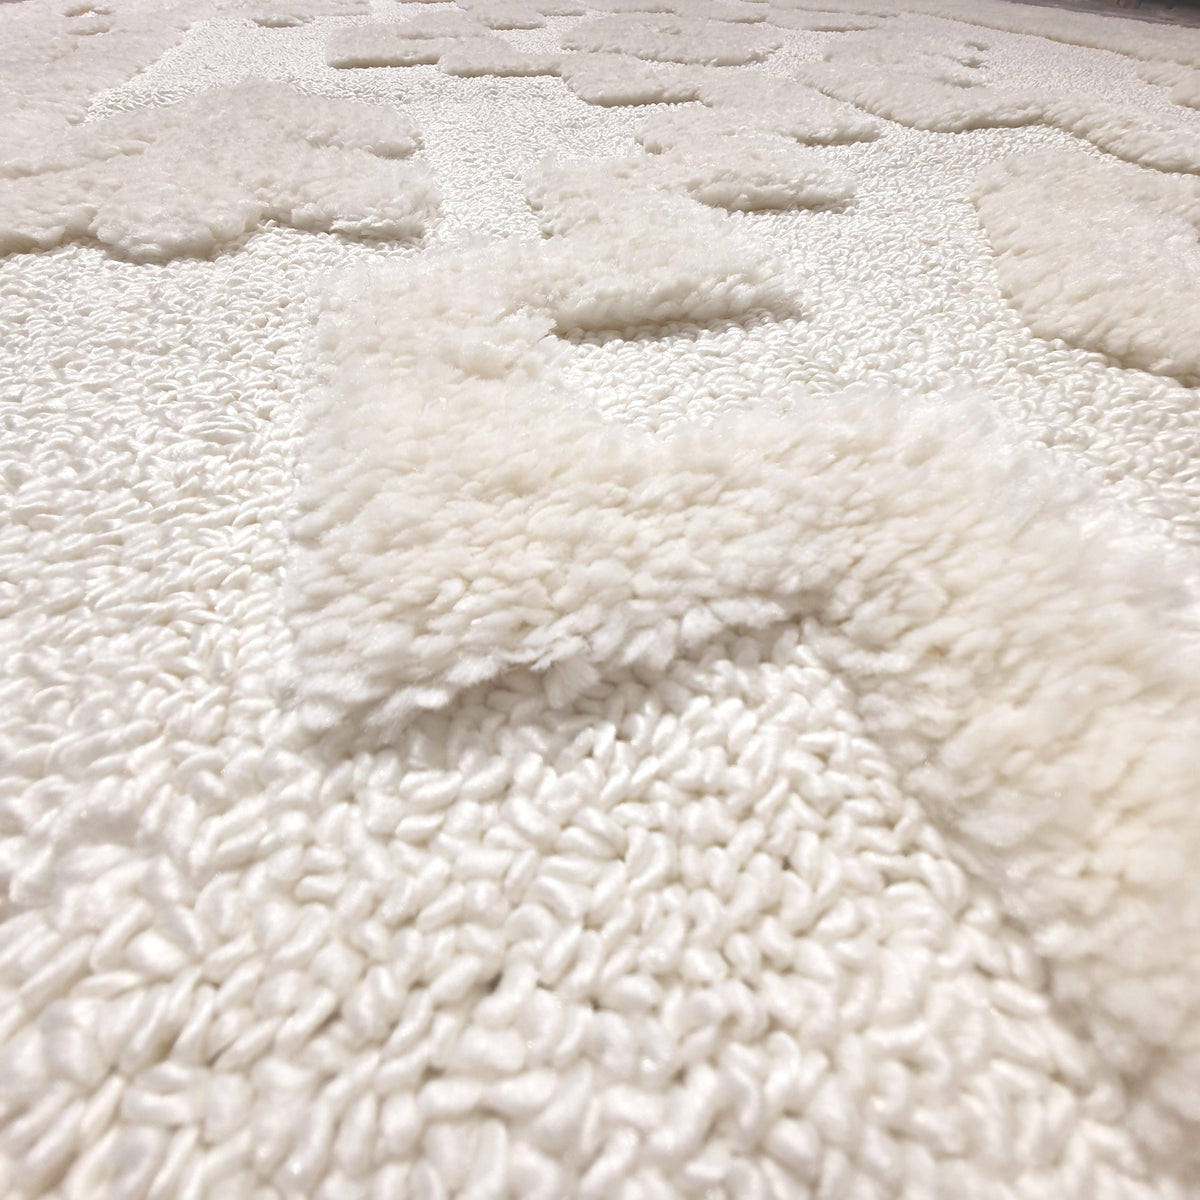 Atlas Rug 11 Cream Runner - Fringes 2